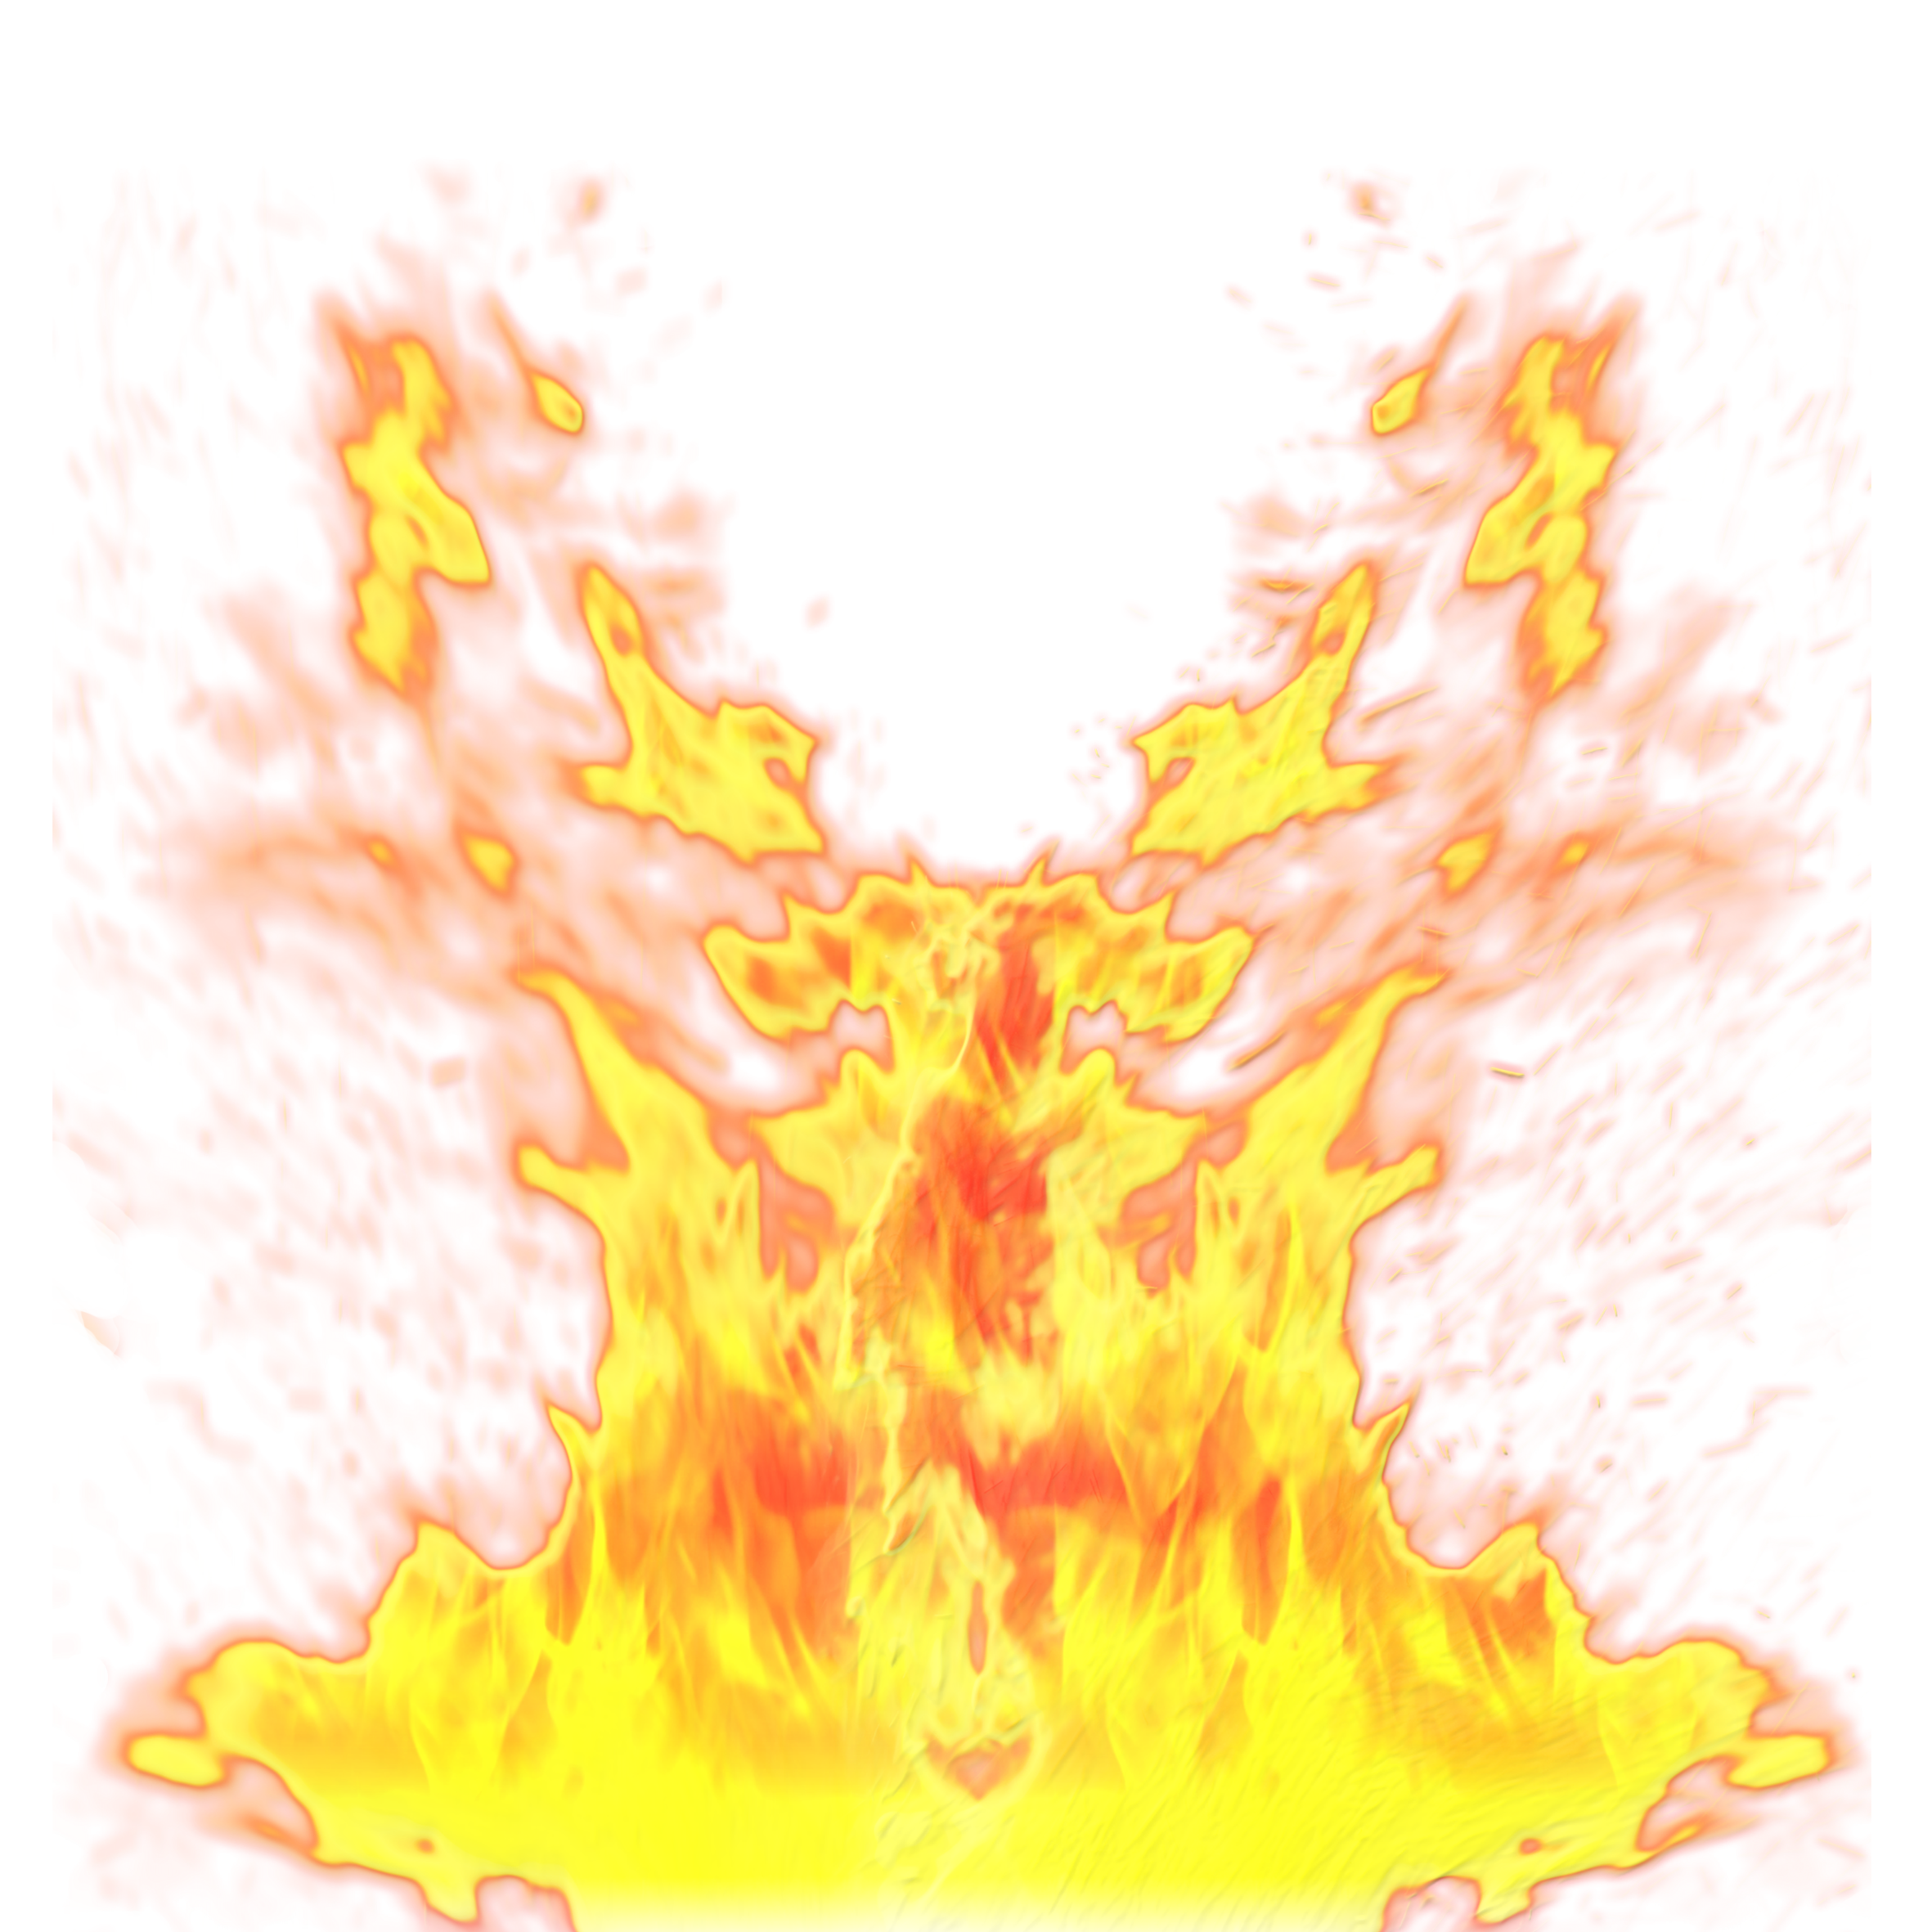 Fire flame PNG images free download hd #44300.